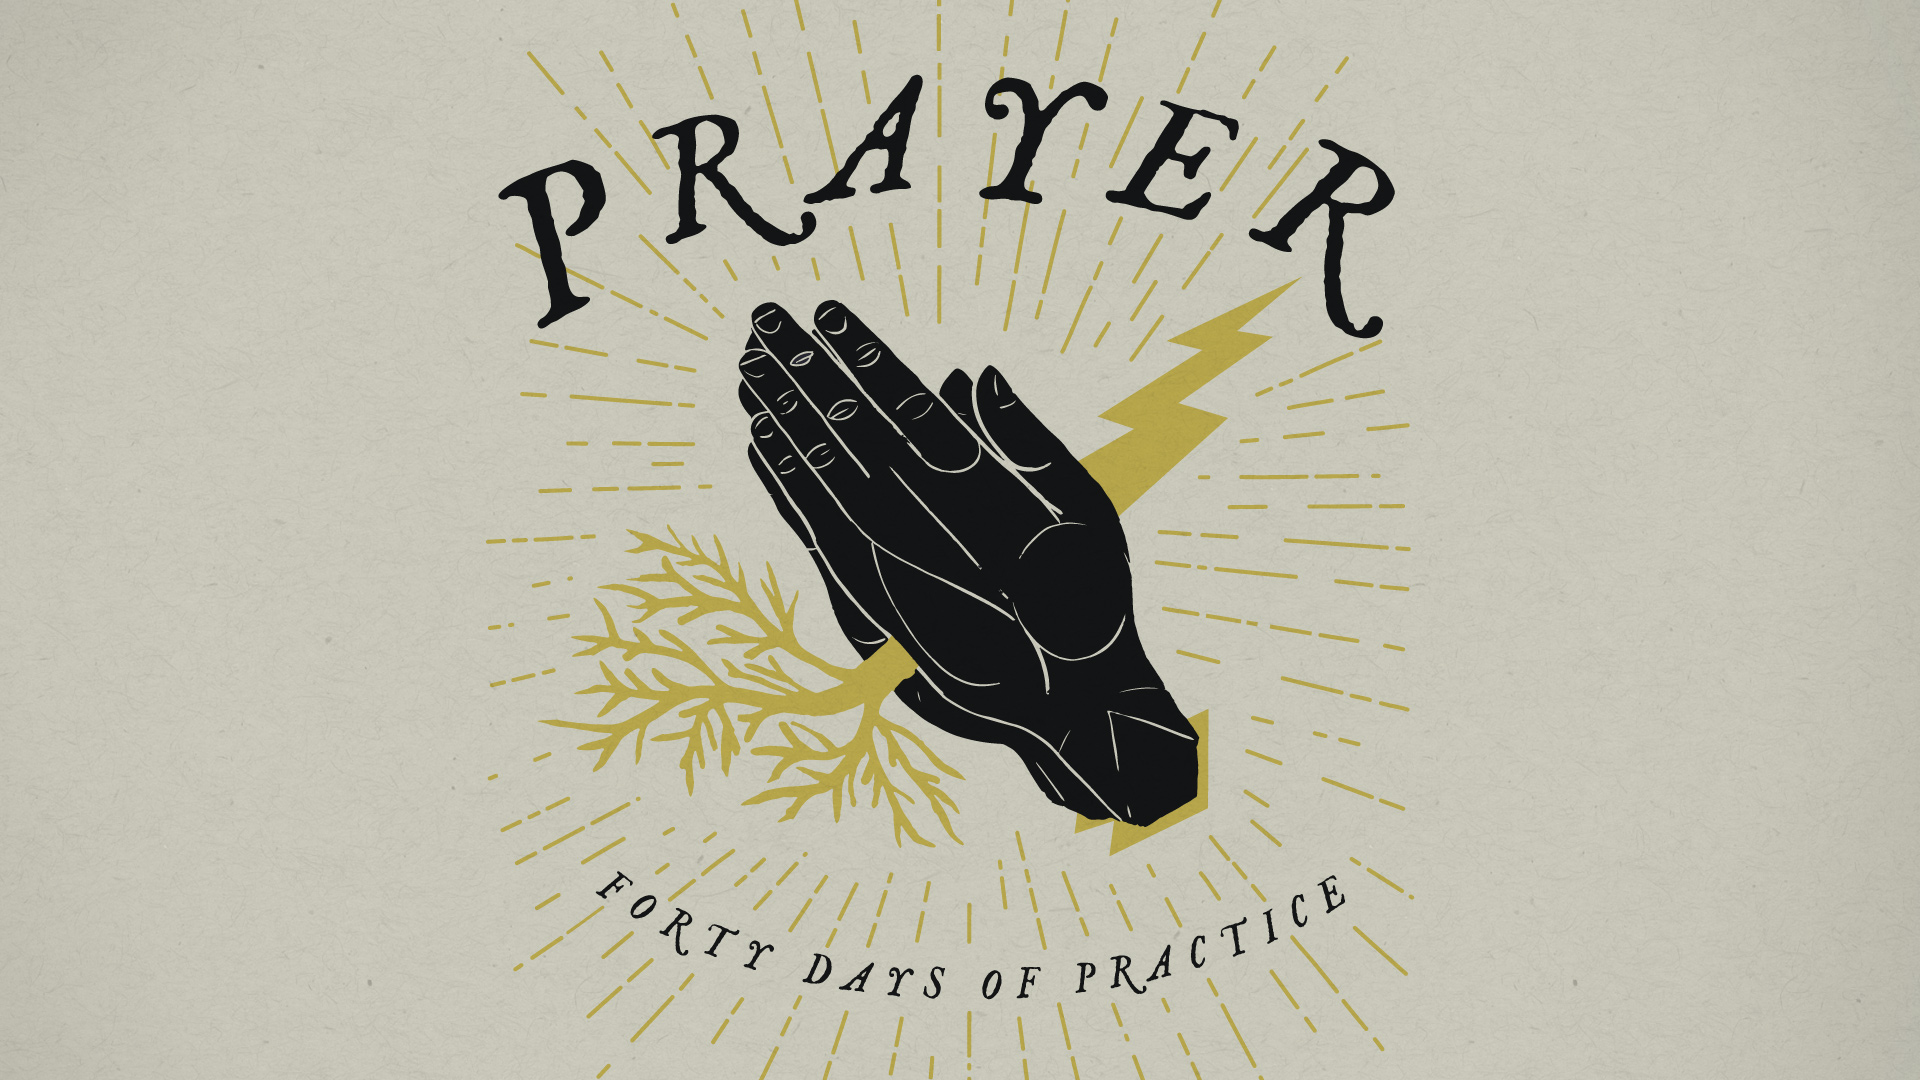 Prayer_Series-Title.jpg